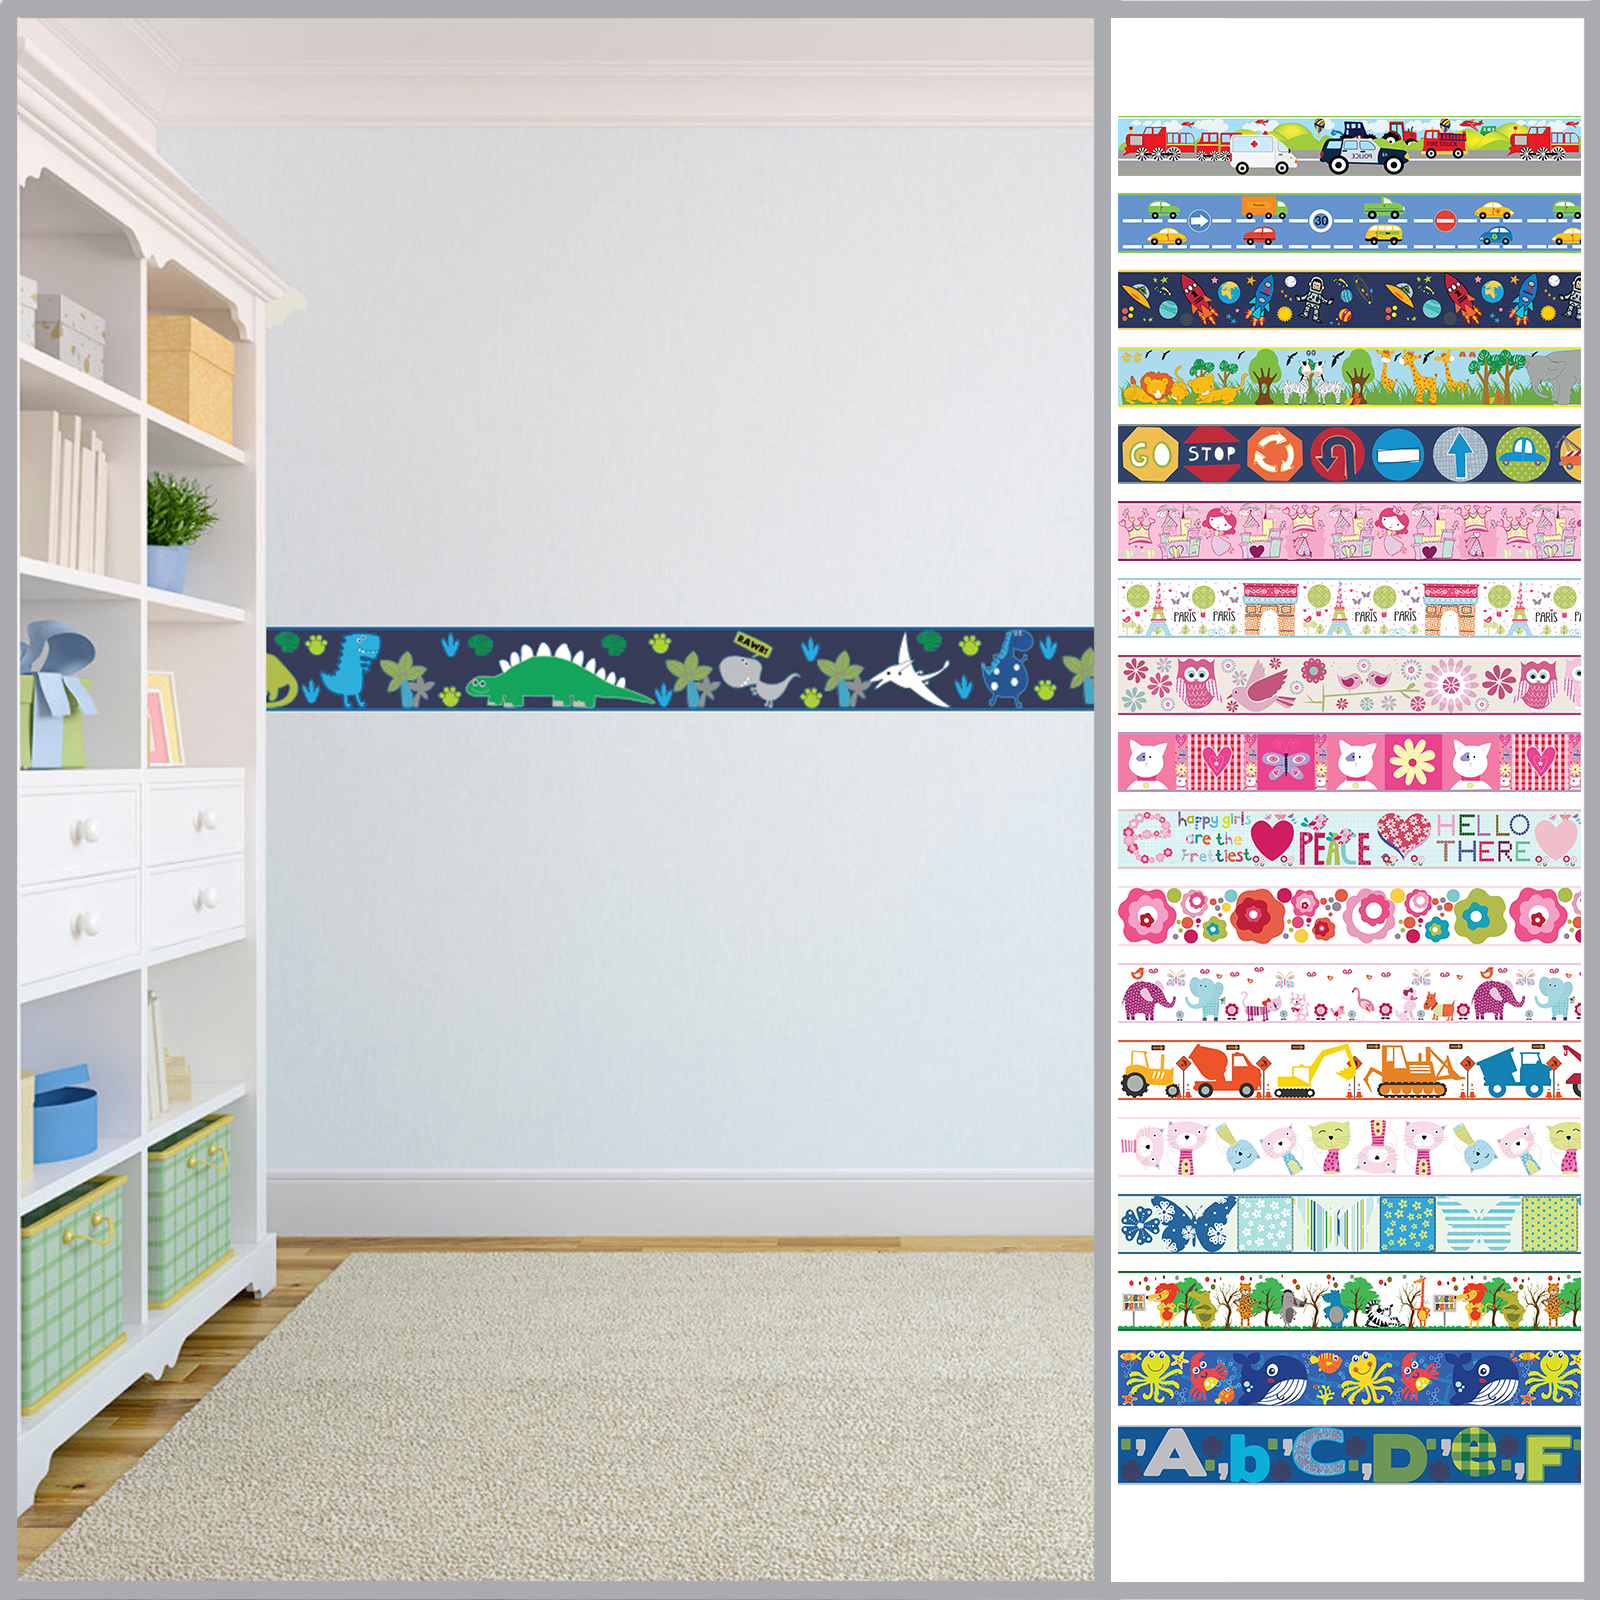 Details about Wallpaper Borders Children\'s Kids Nursery Boys Girls Bedroom  Wall Self Adhesive